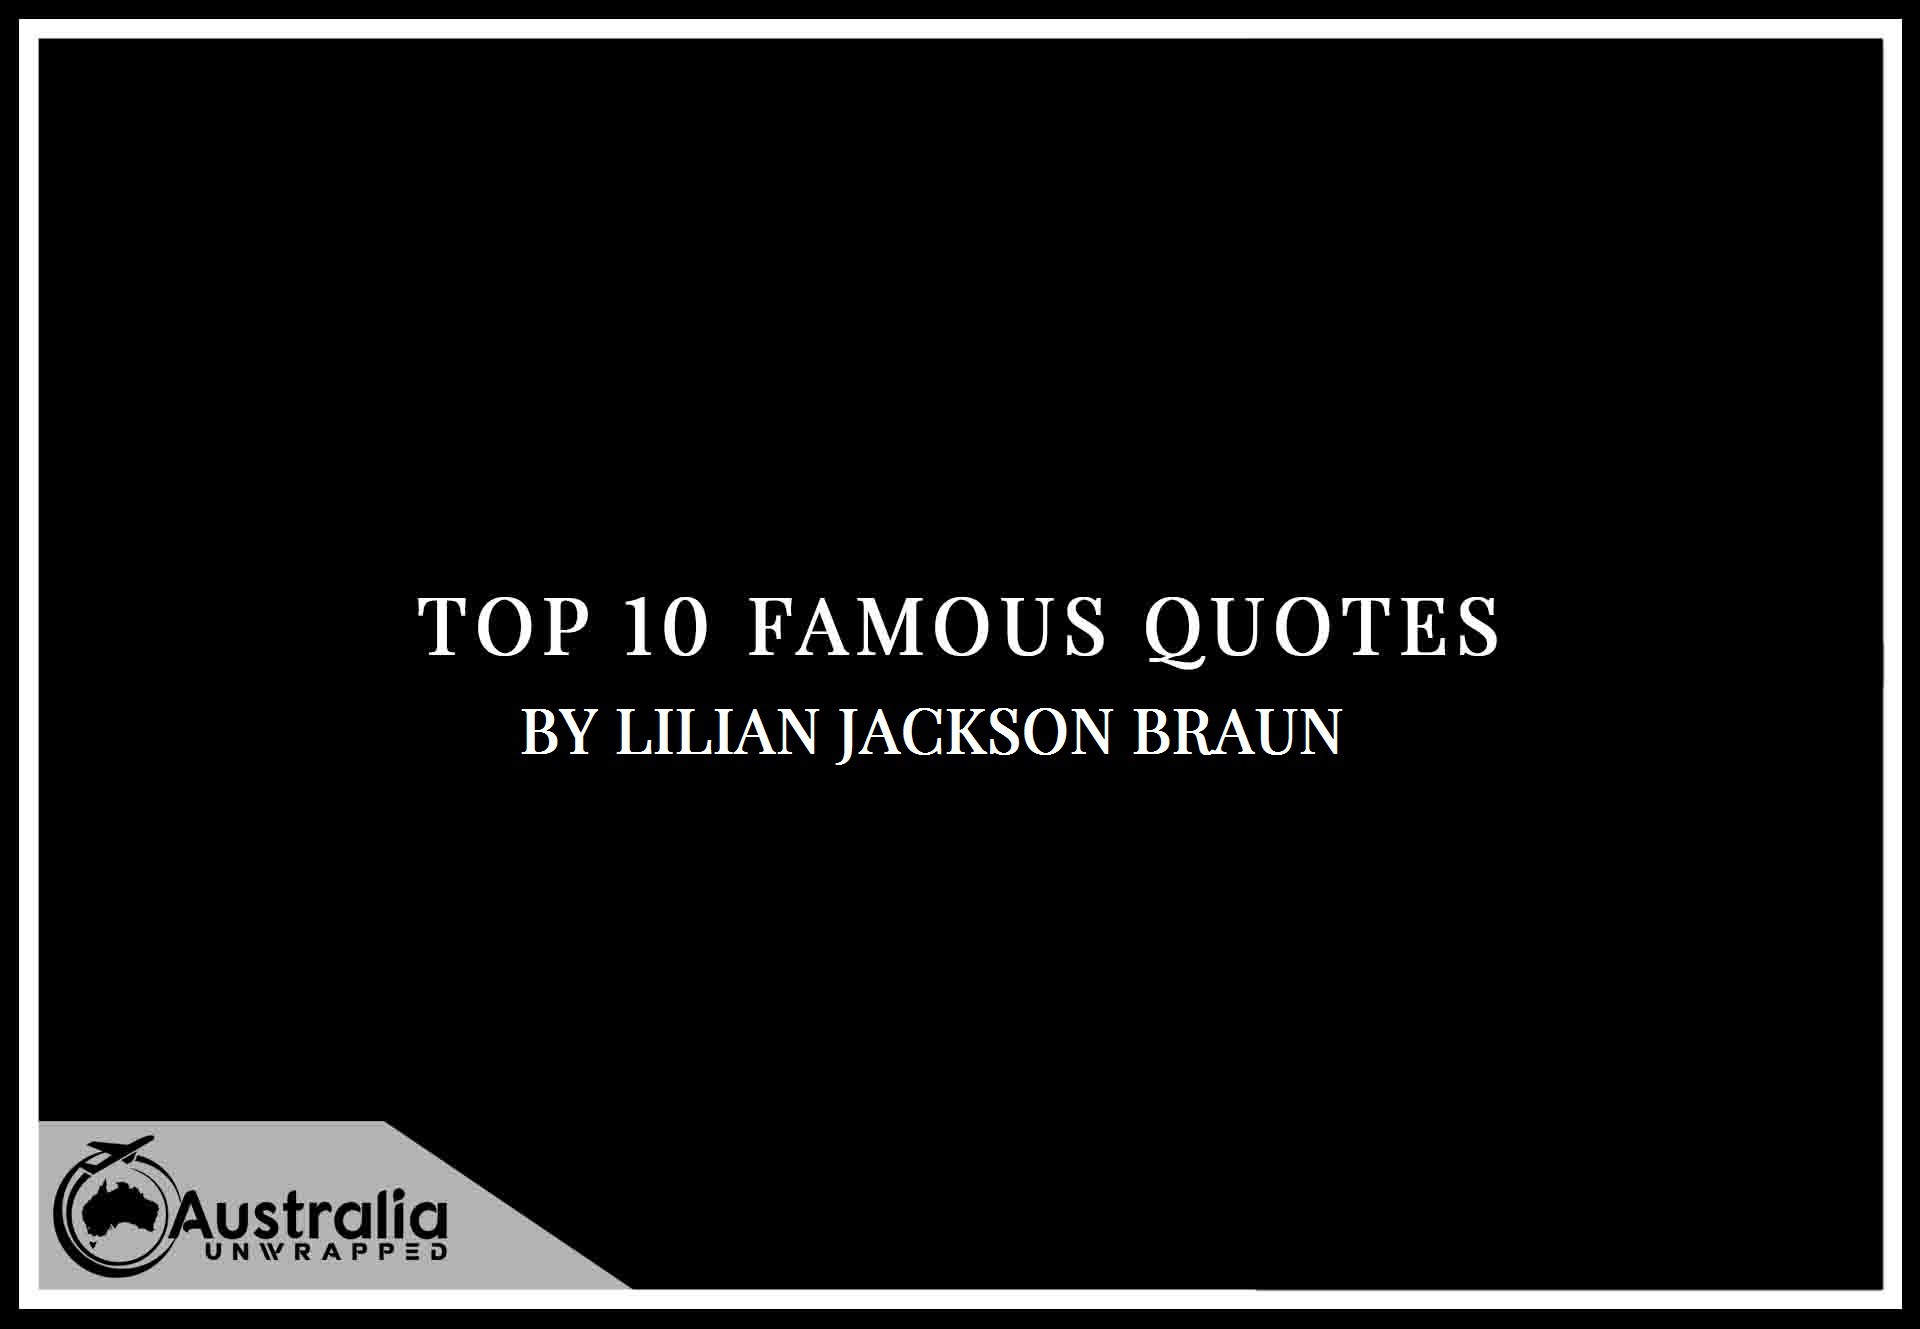 Lilian Jackson Braun's Top 10 Popular and Famous Quotes